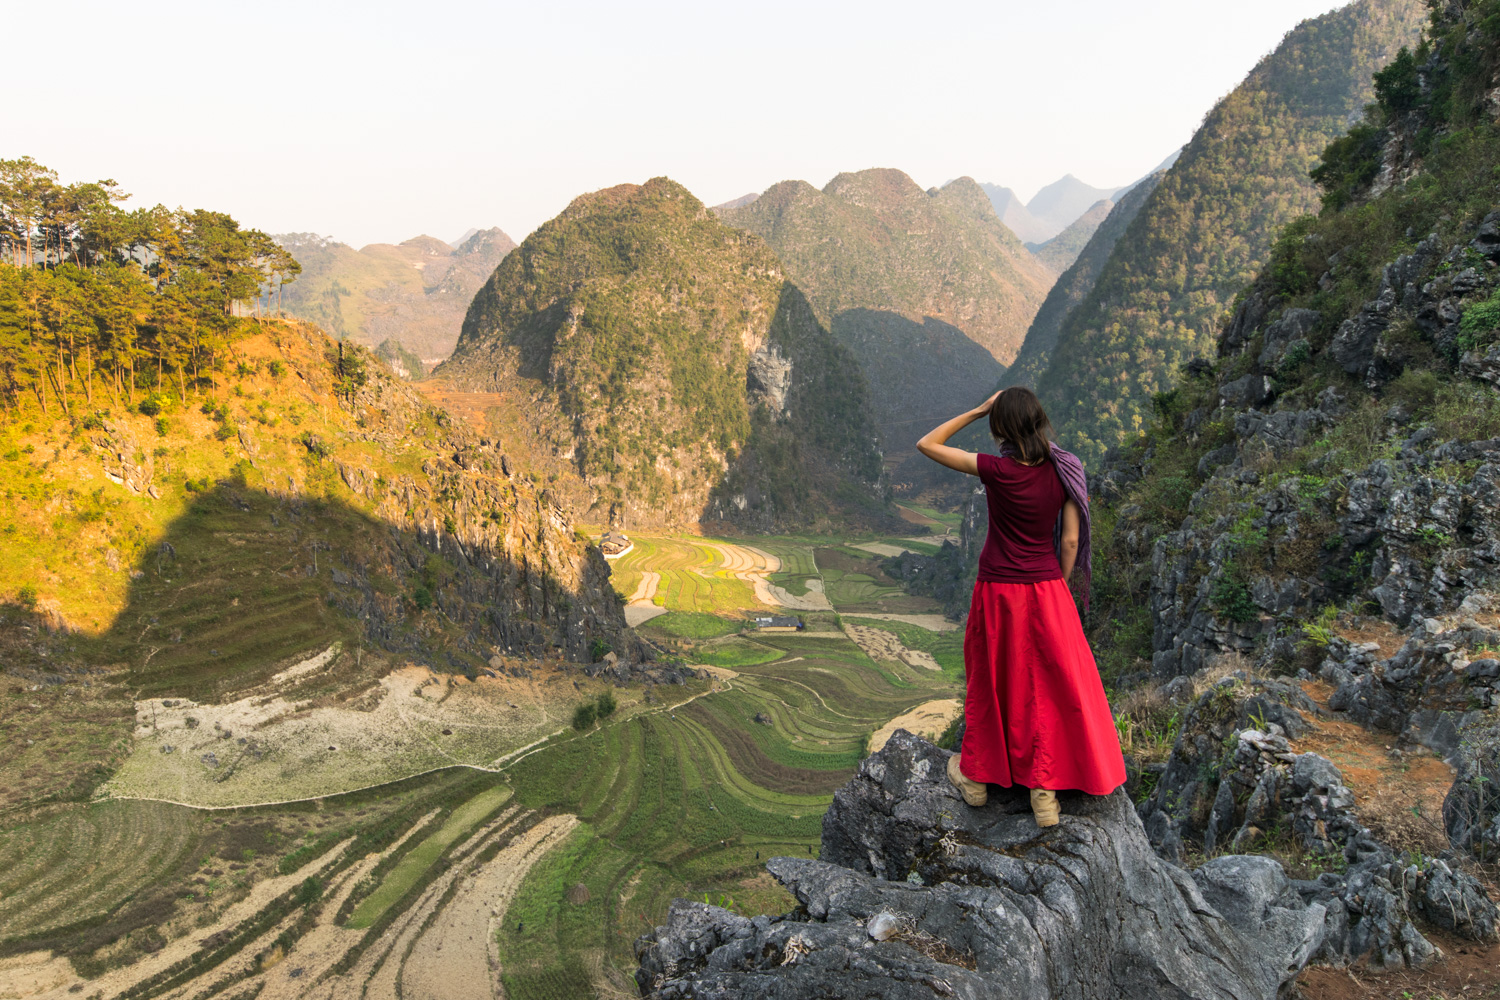 143 - In Ha Giang province, north Vietnam